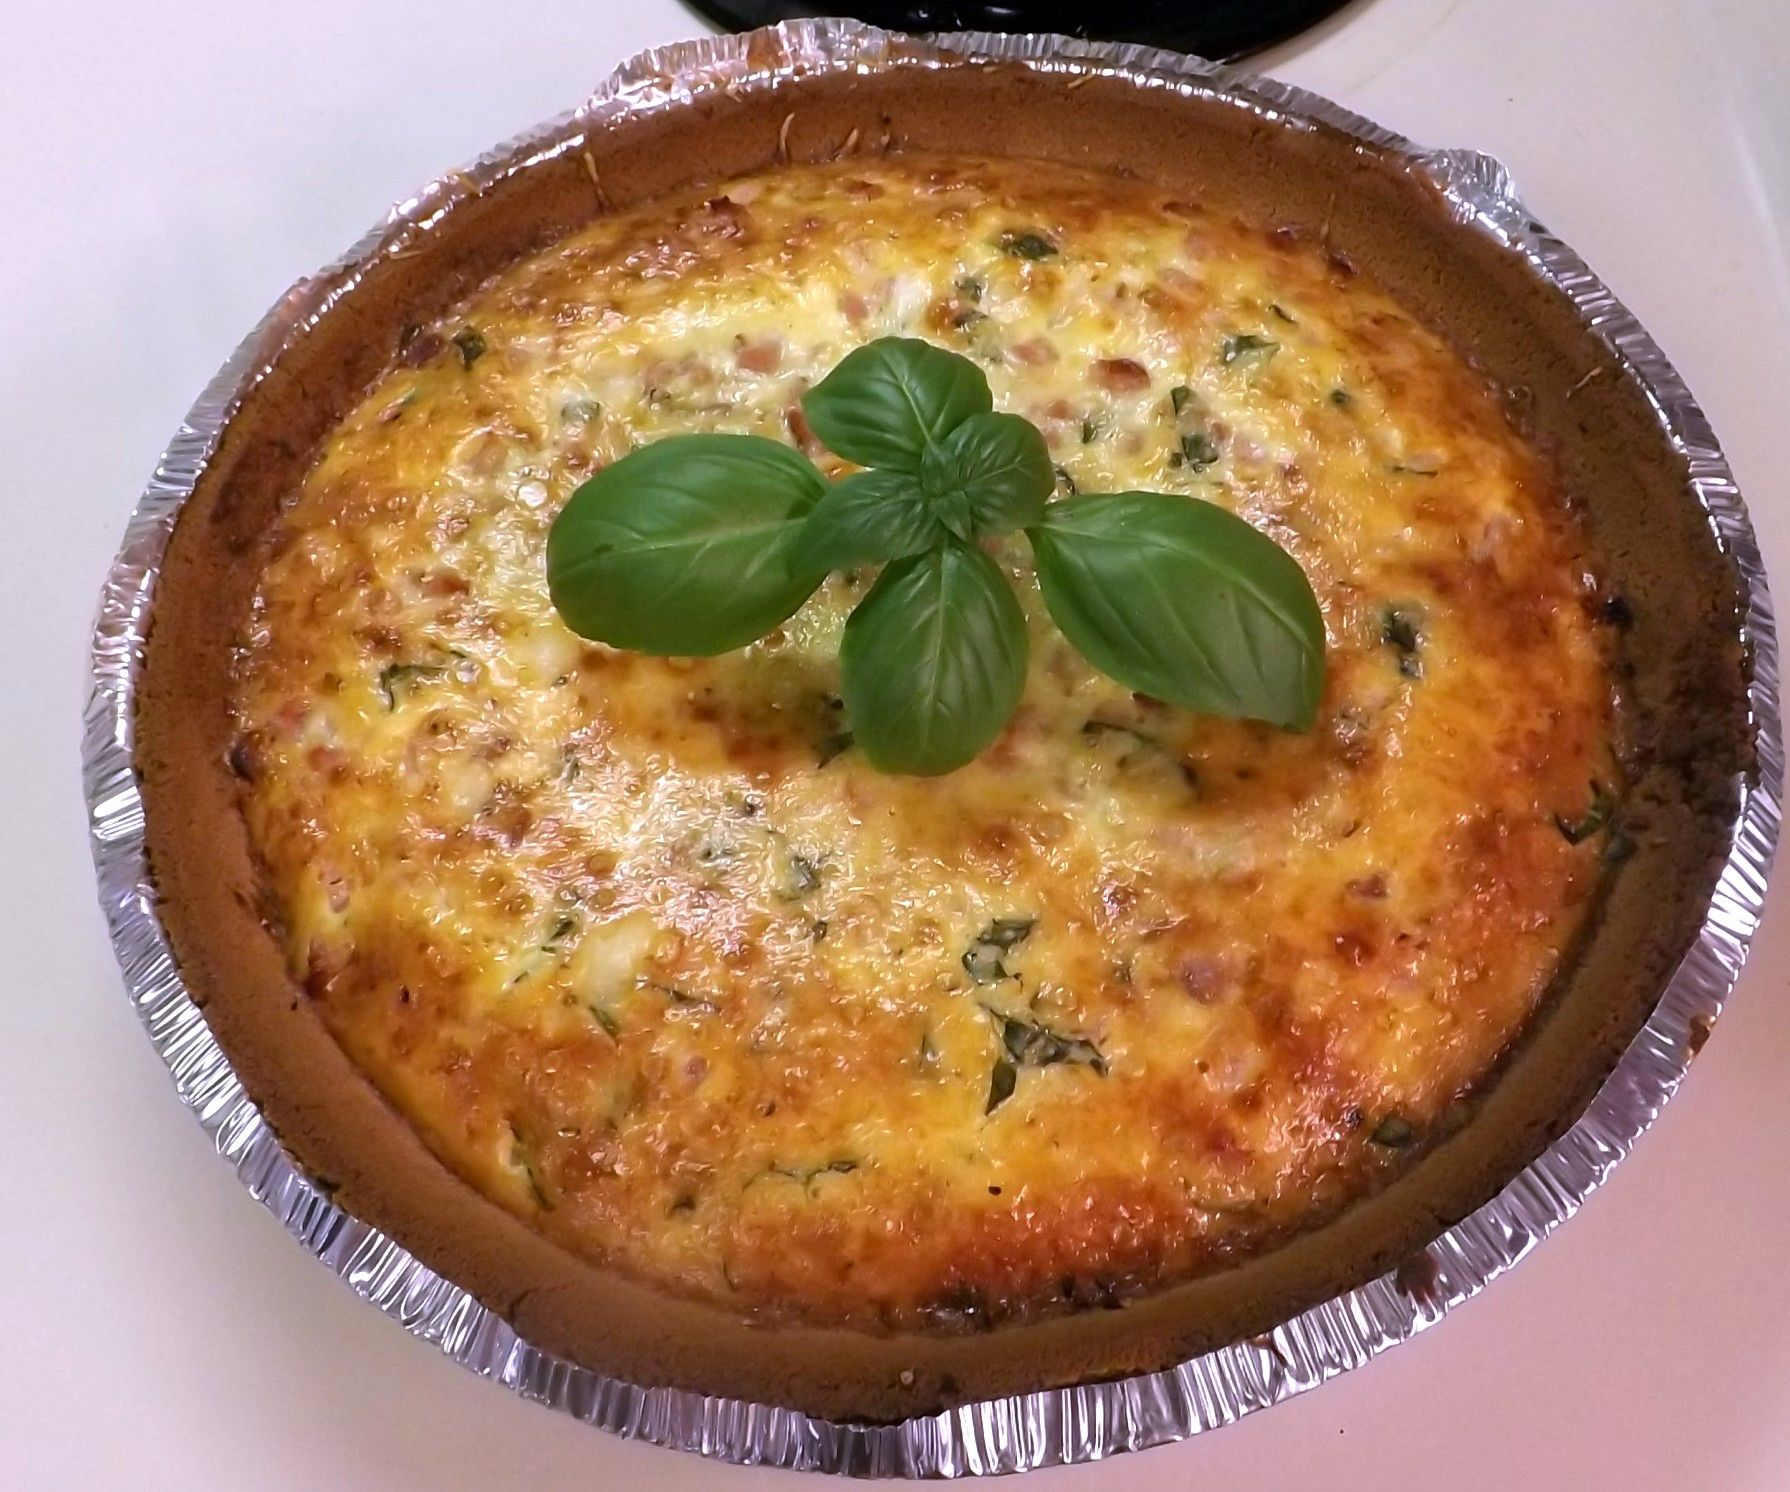 HAM, CHEESE, BASIL QUICHE (Soft Food for Sensitive Gums)